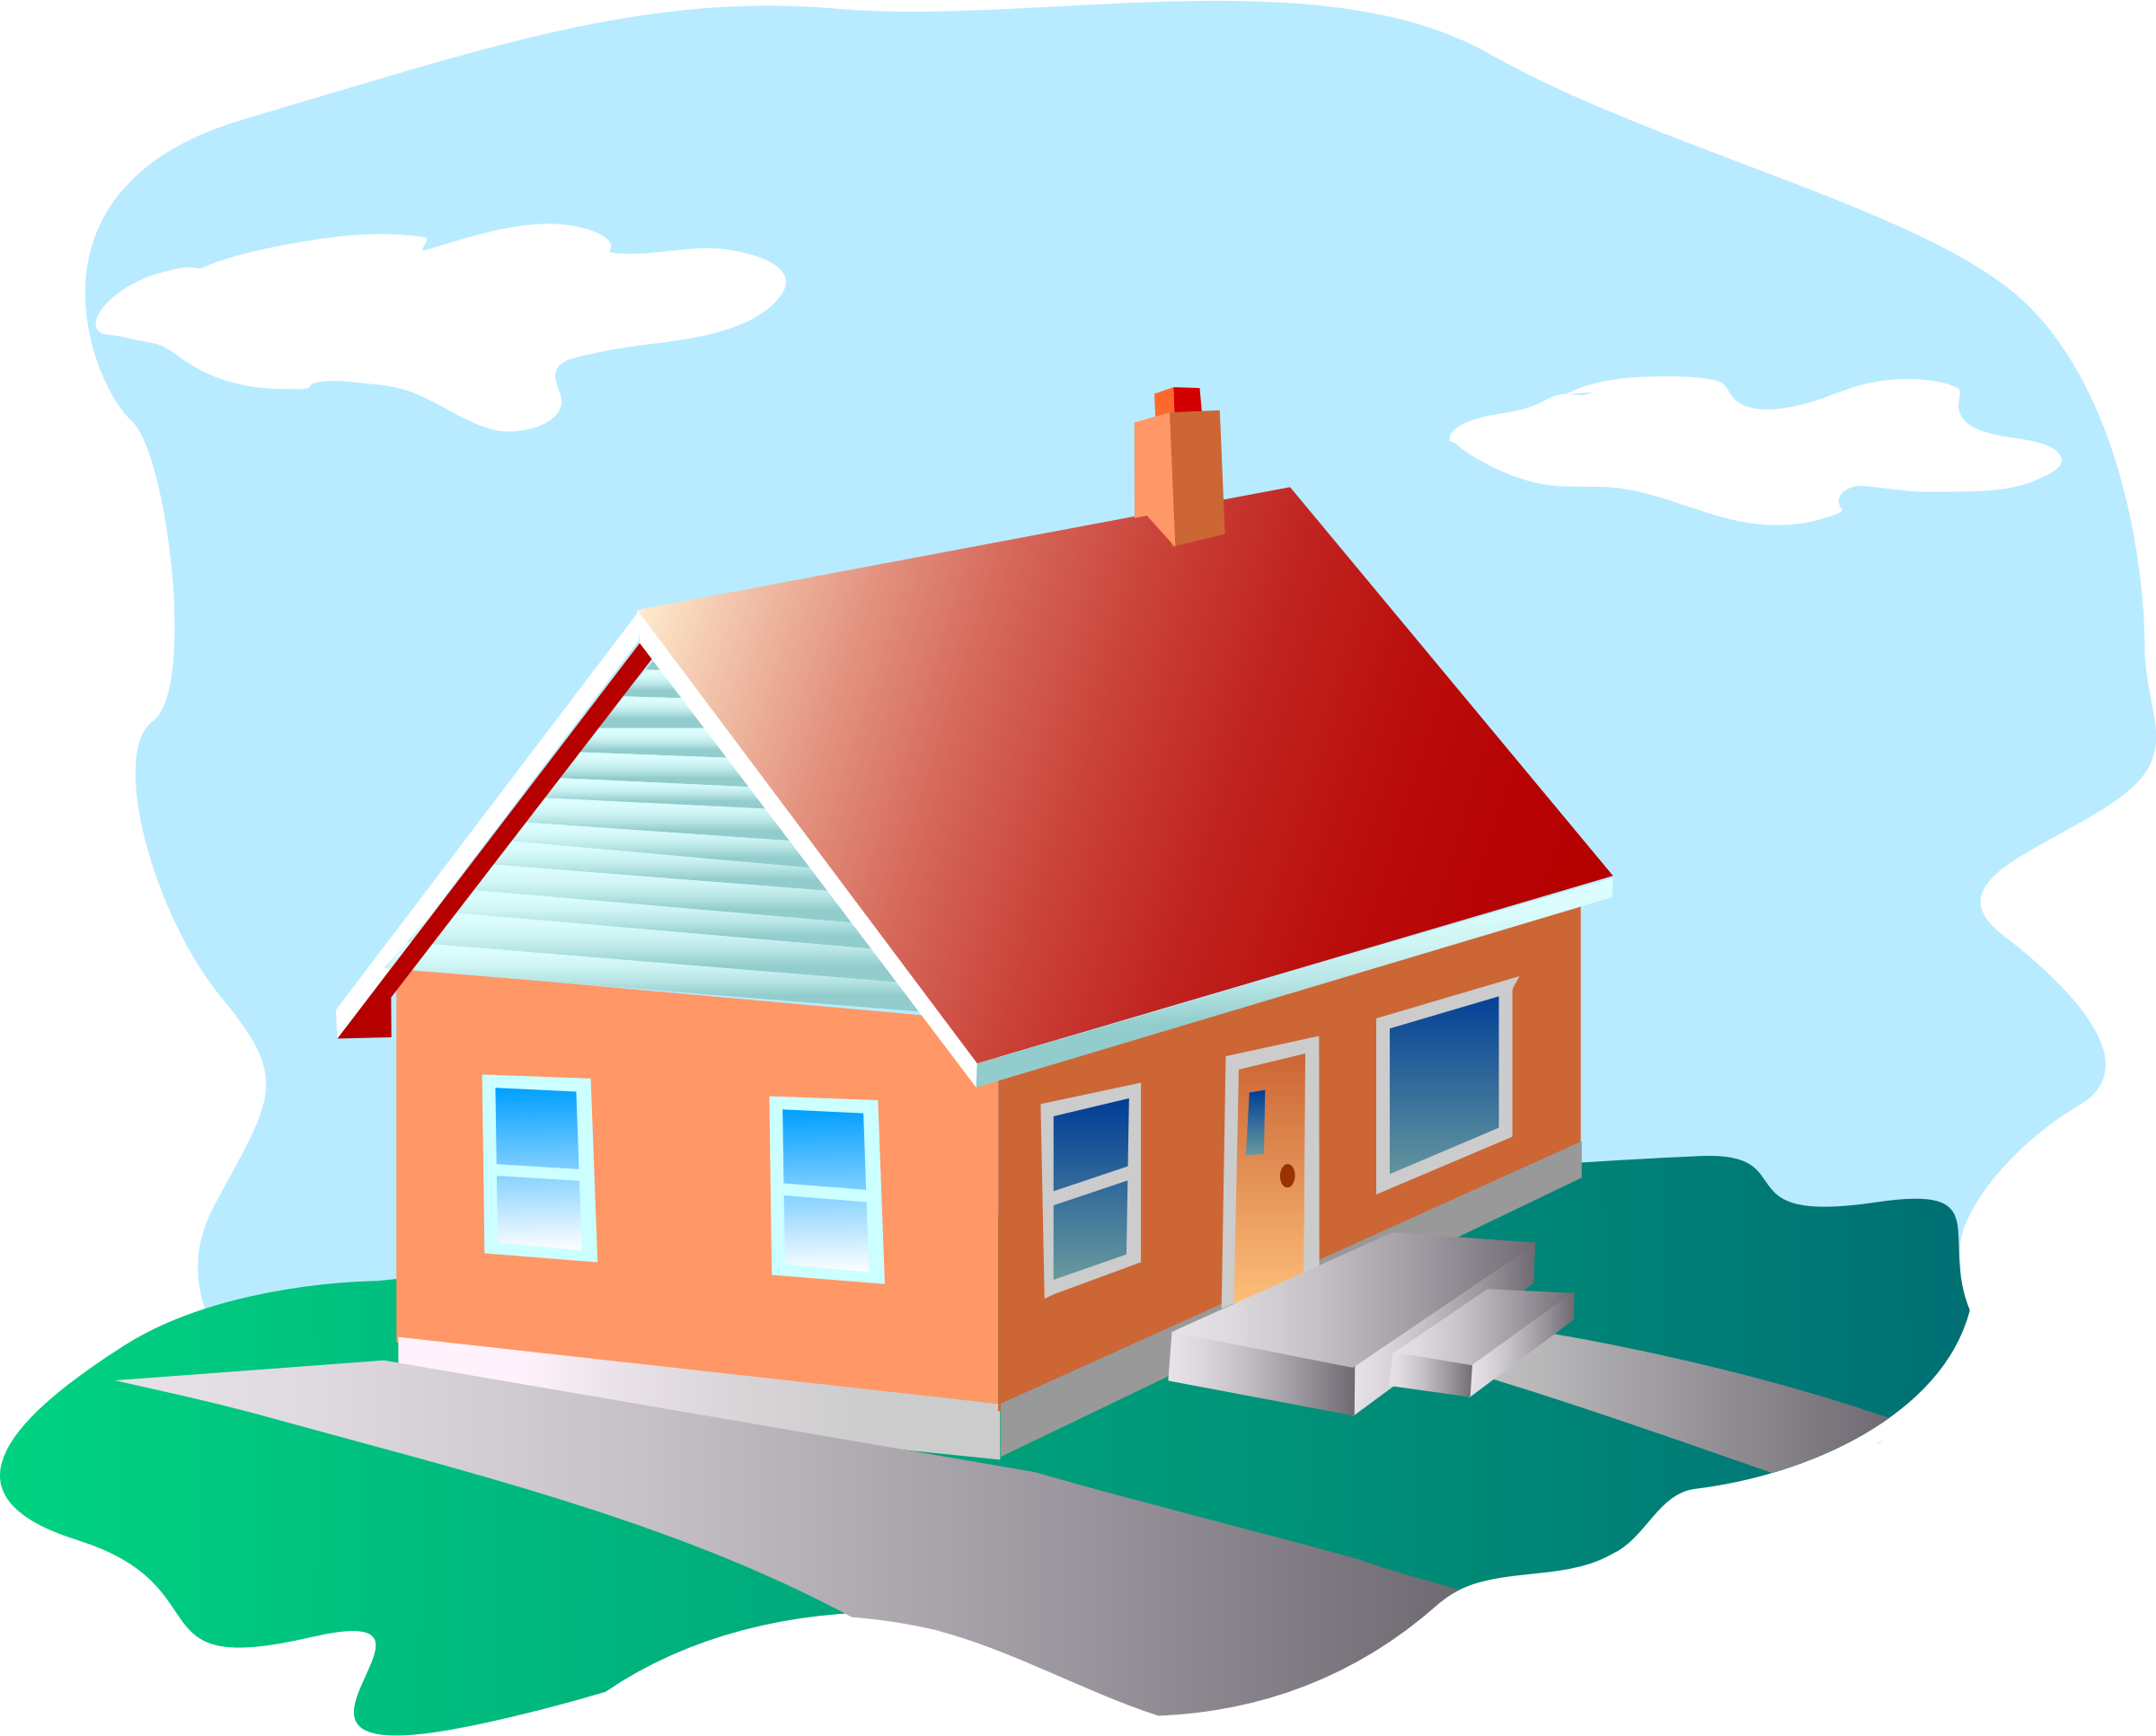 Cartoon home png. Clipart house big image